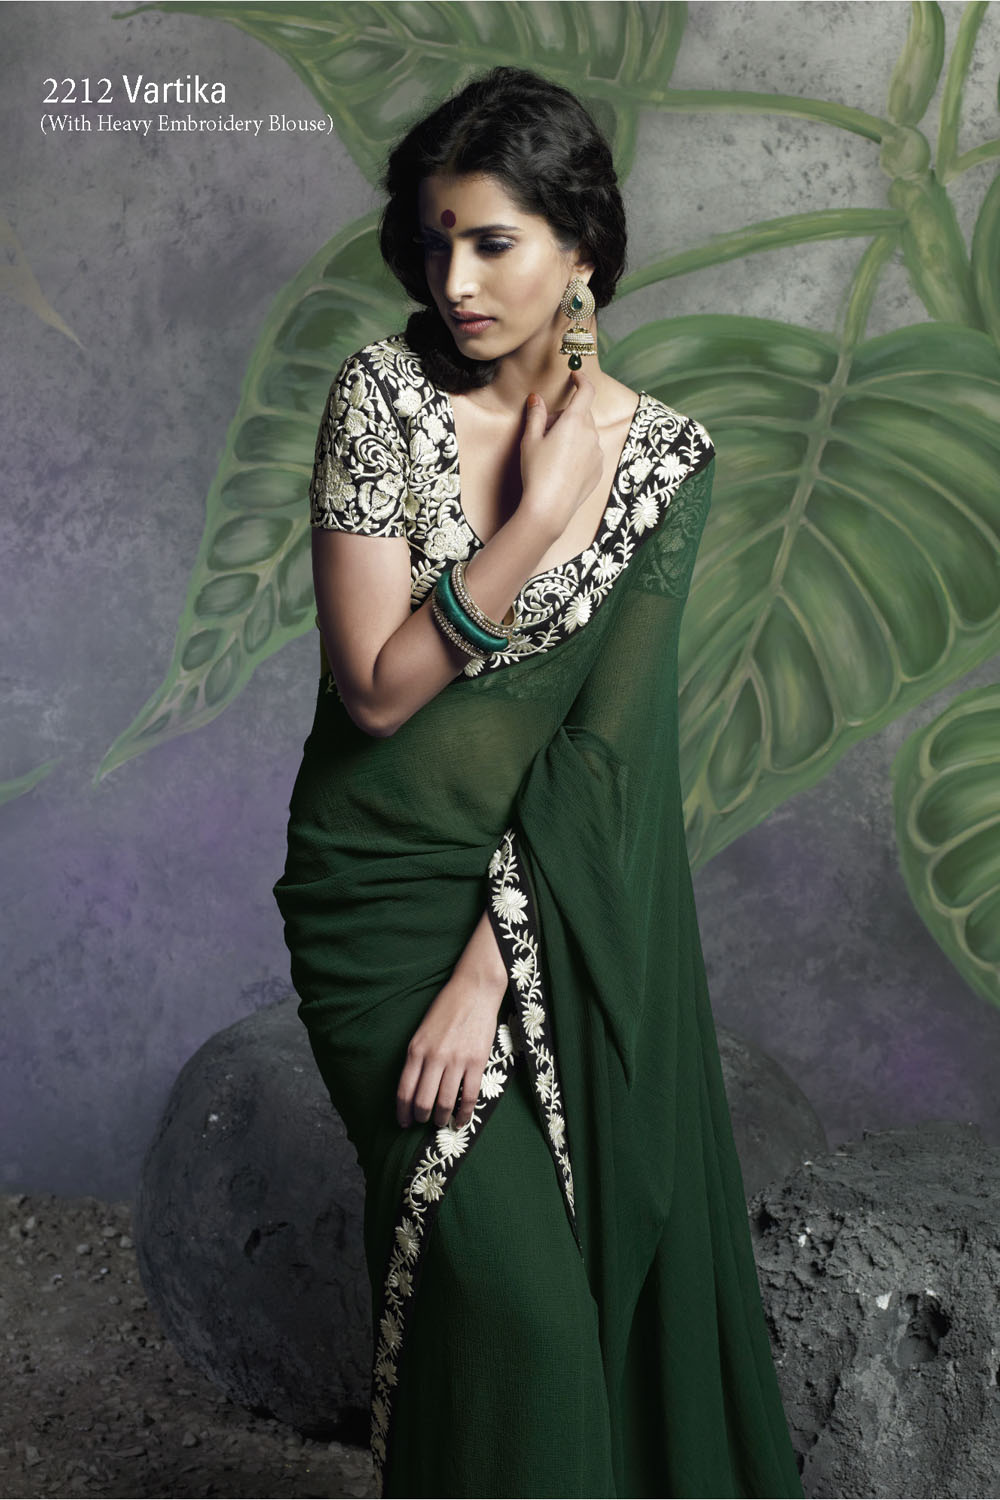 Bottle Green Saree With Heavy Embroidery Blouse